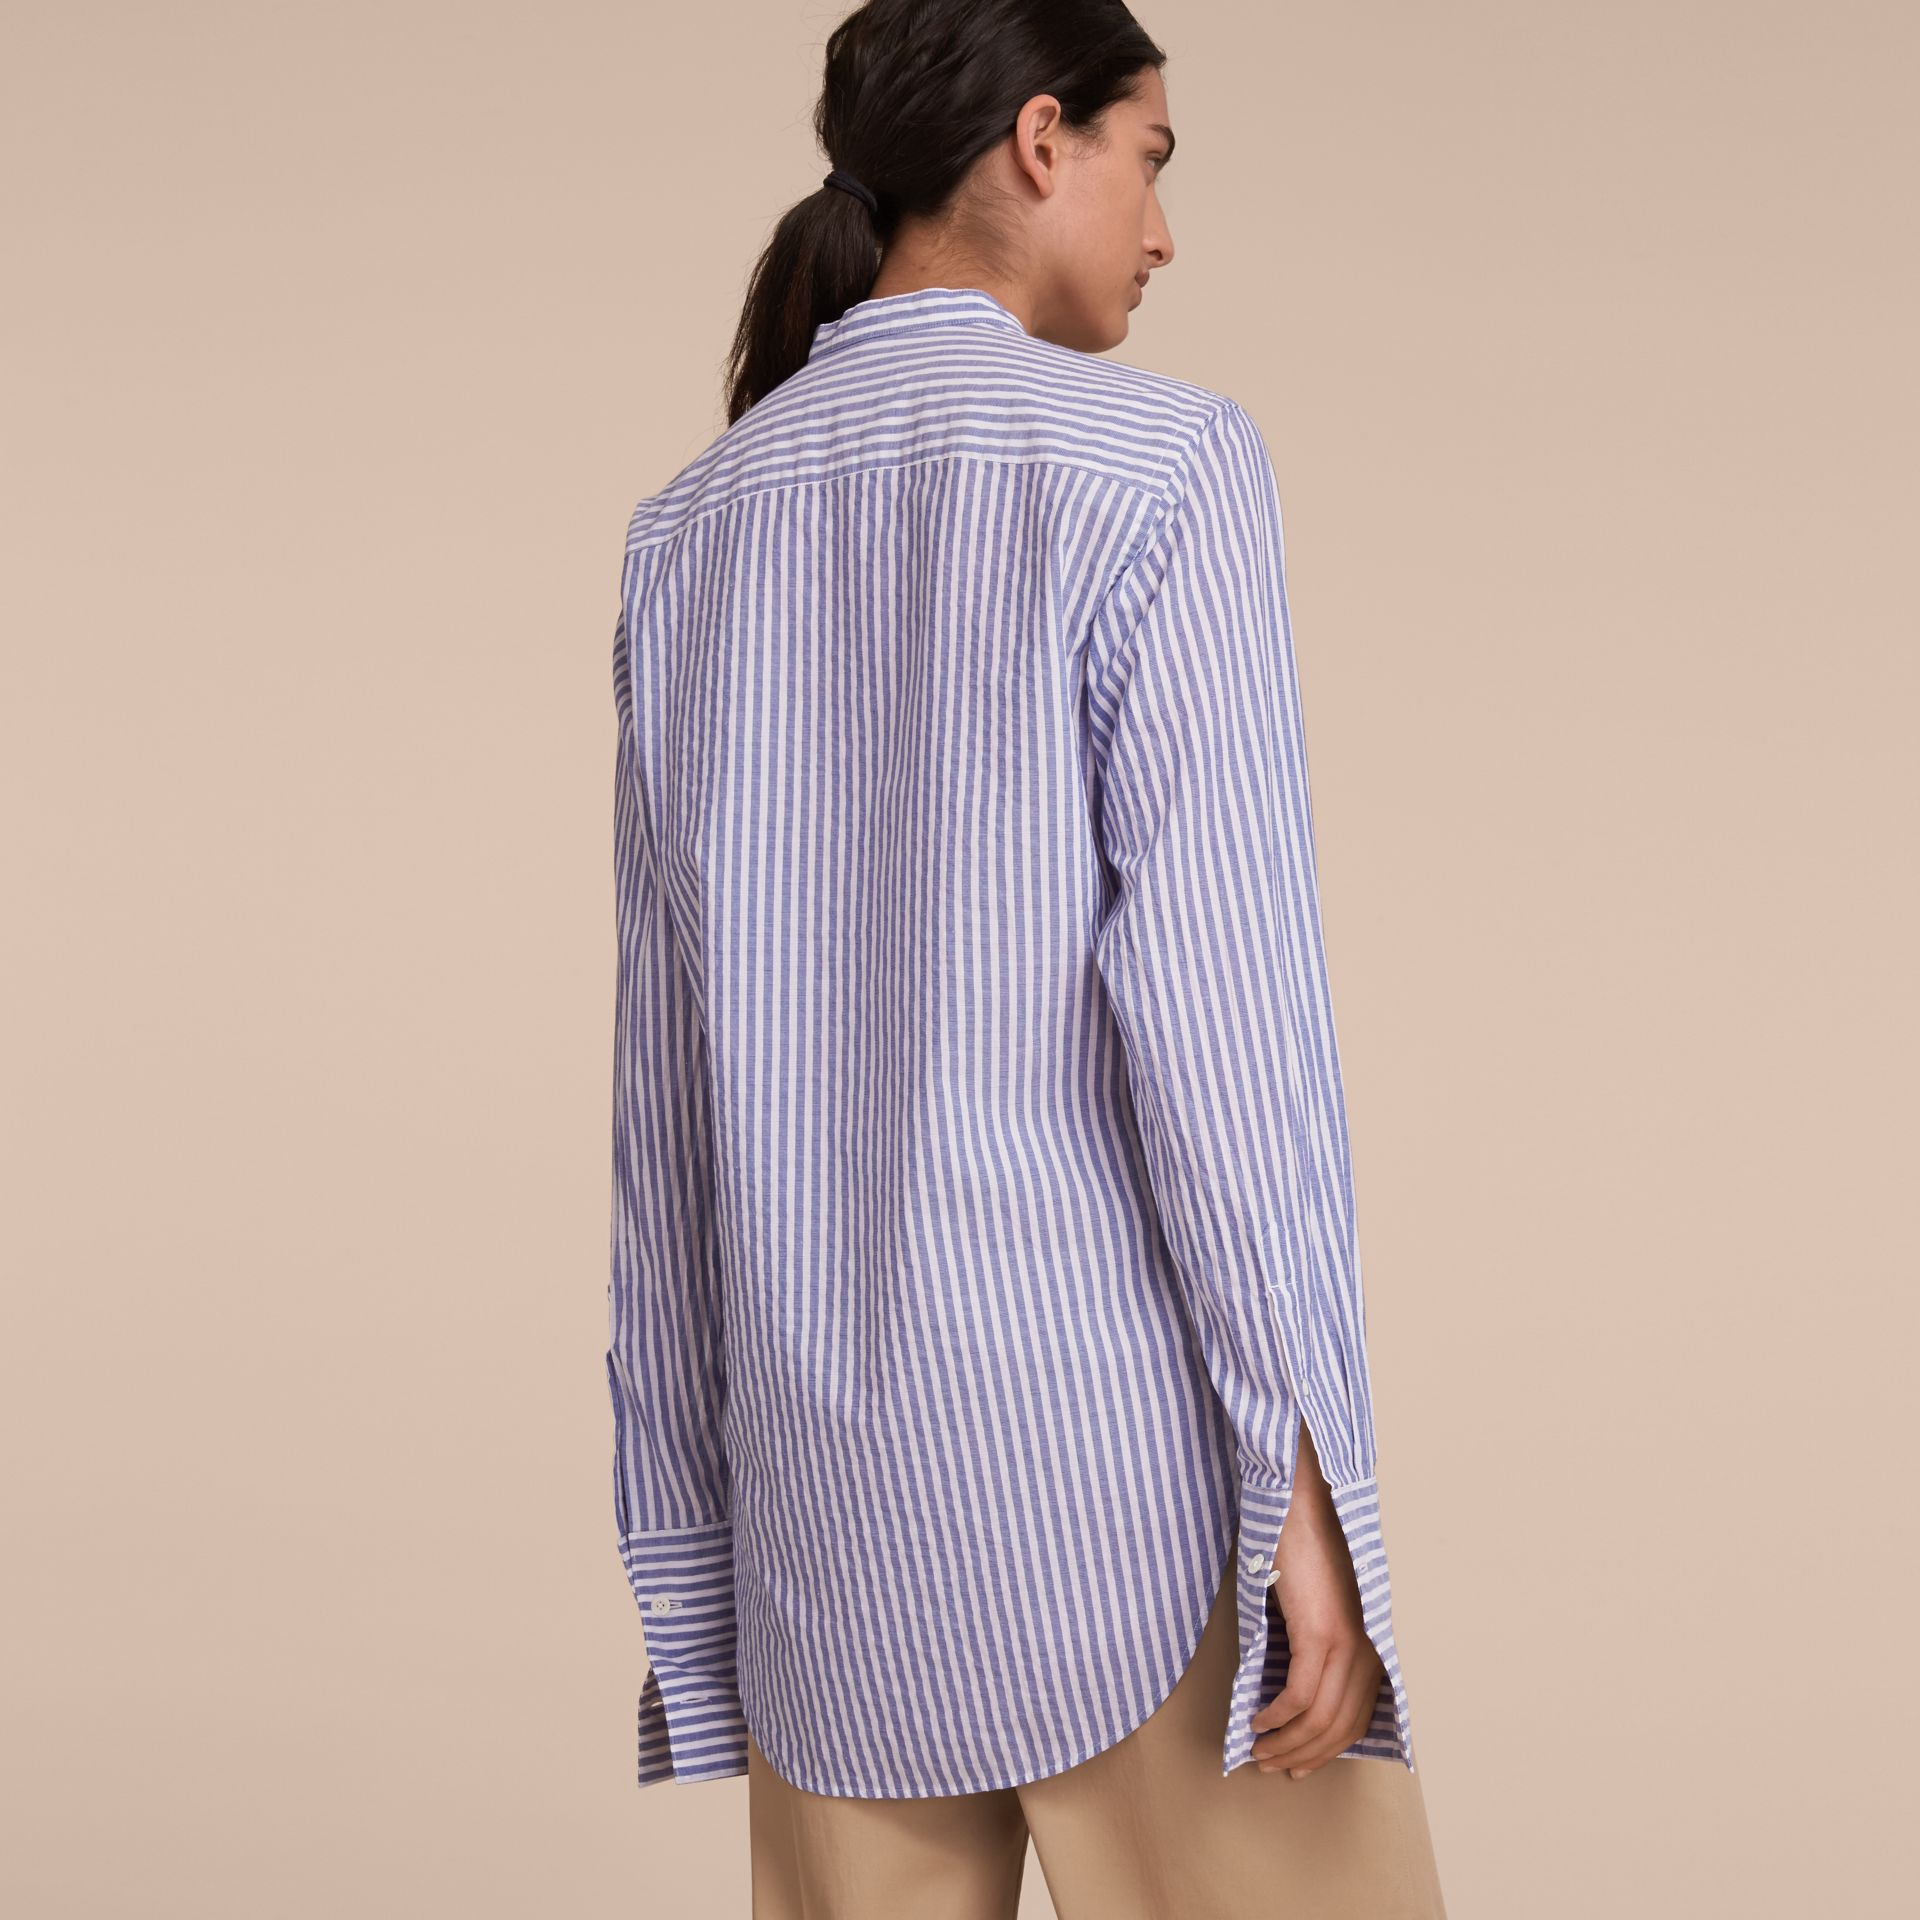 Unisex Grandad Collar Pleated Bib Striped Cotton Shirt in Pale Blue/white - Women | Burberry - gallery image 6